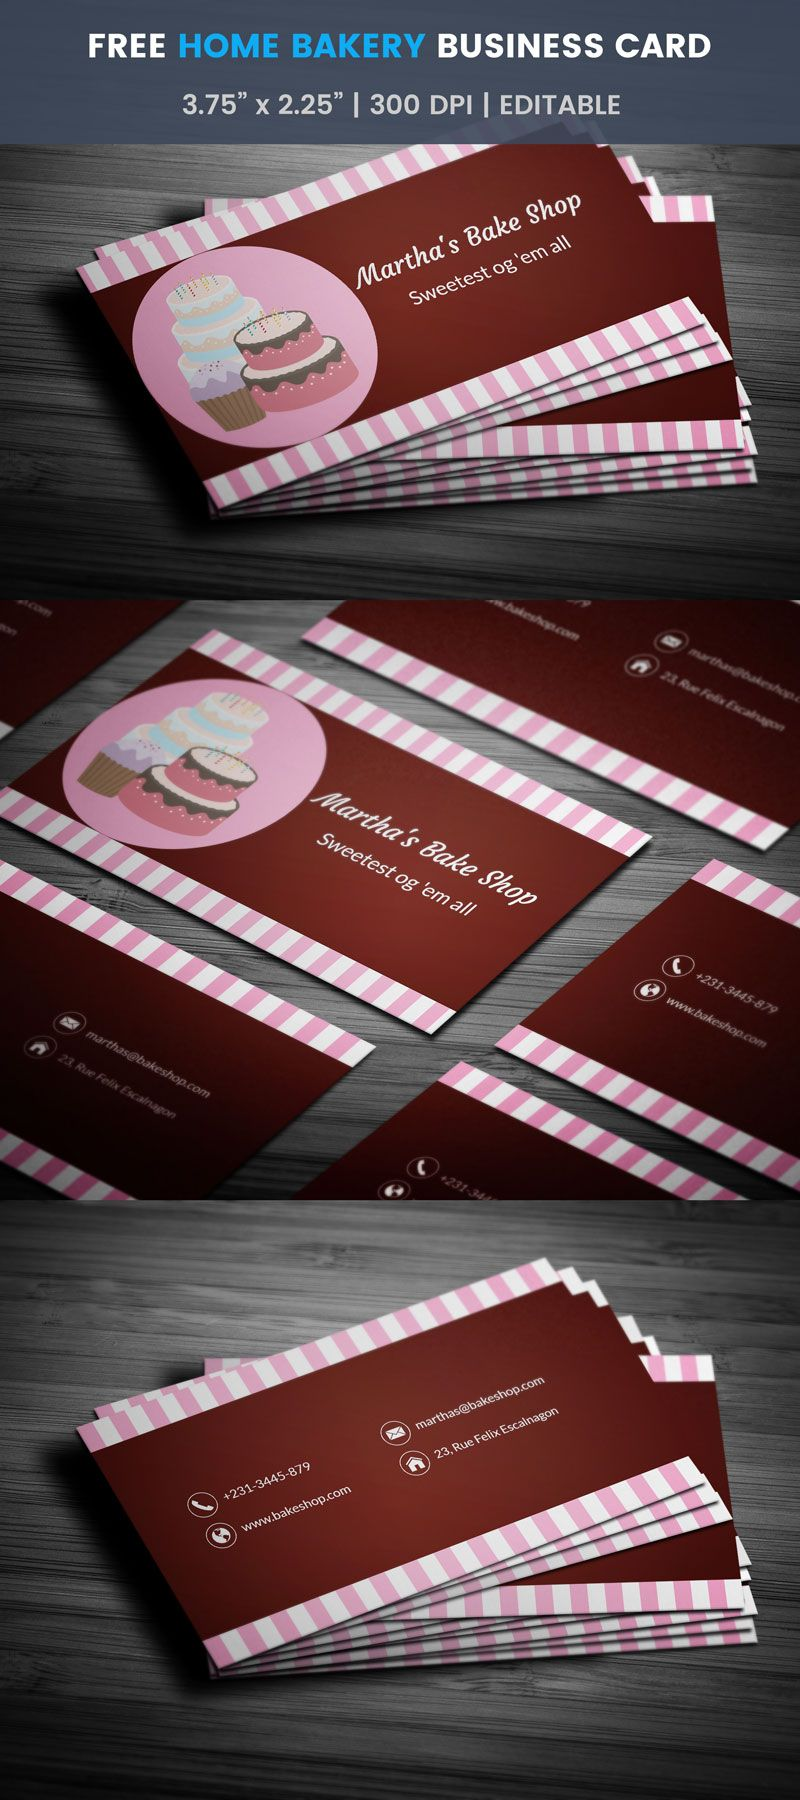 Pink home bakery business card template full preview free bakery pink home bakery business card template full preview reheart Gallery